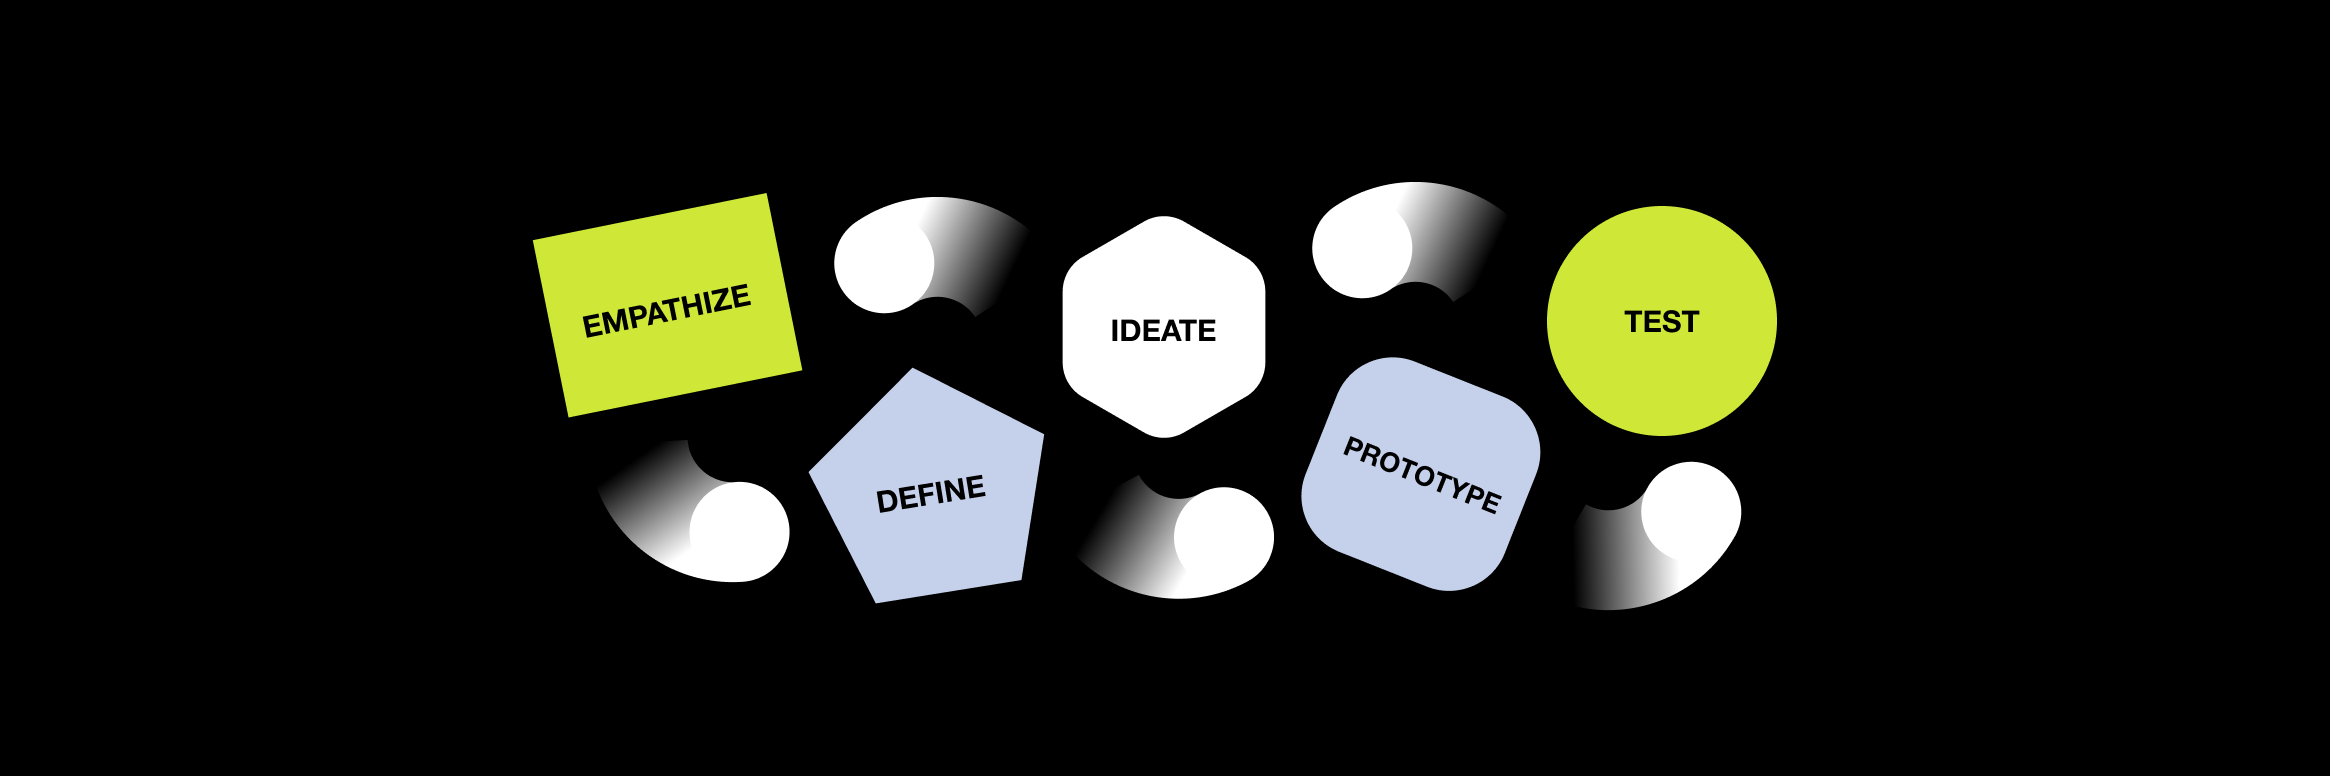 Our UX design process step-by-step